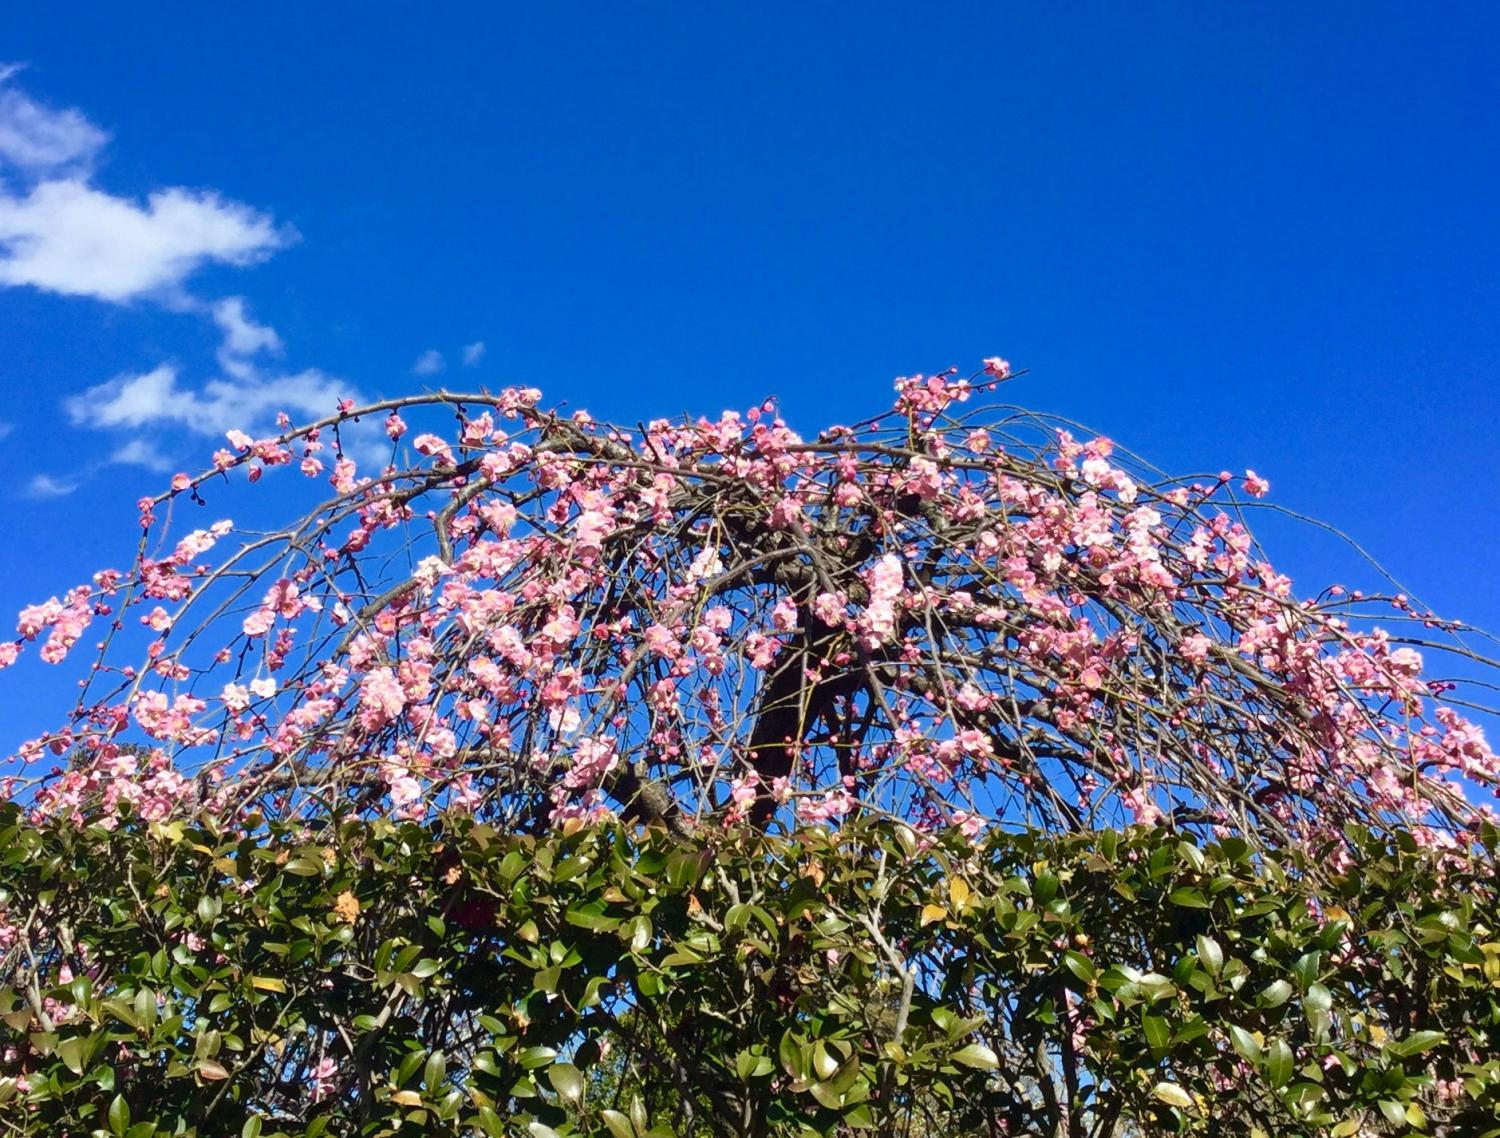 Droop Japanese apricot with red blossoms and white plum blossoms